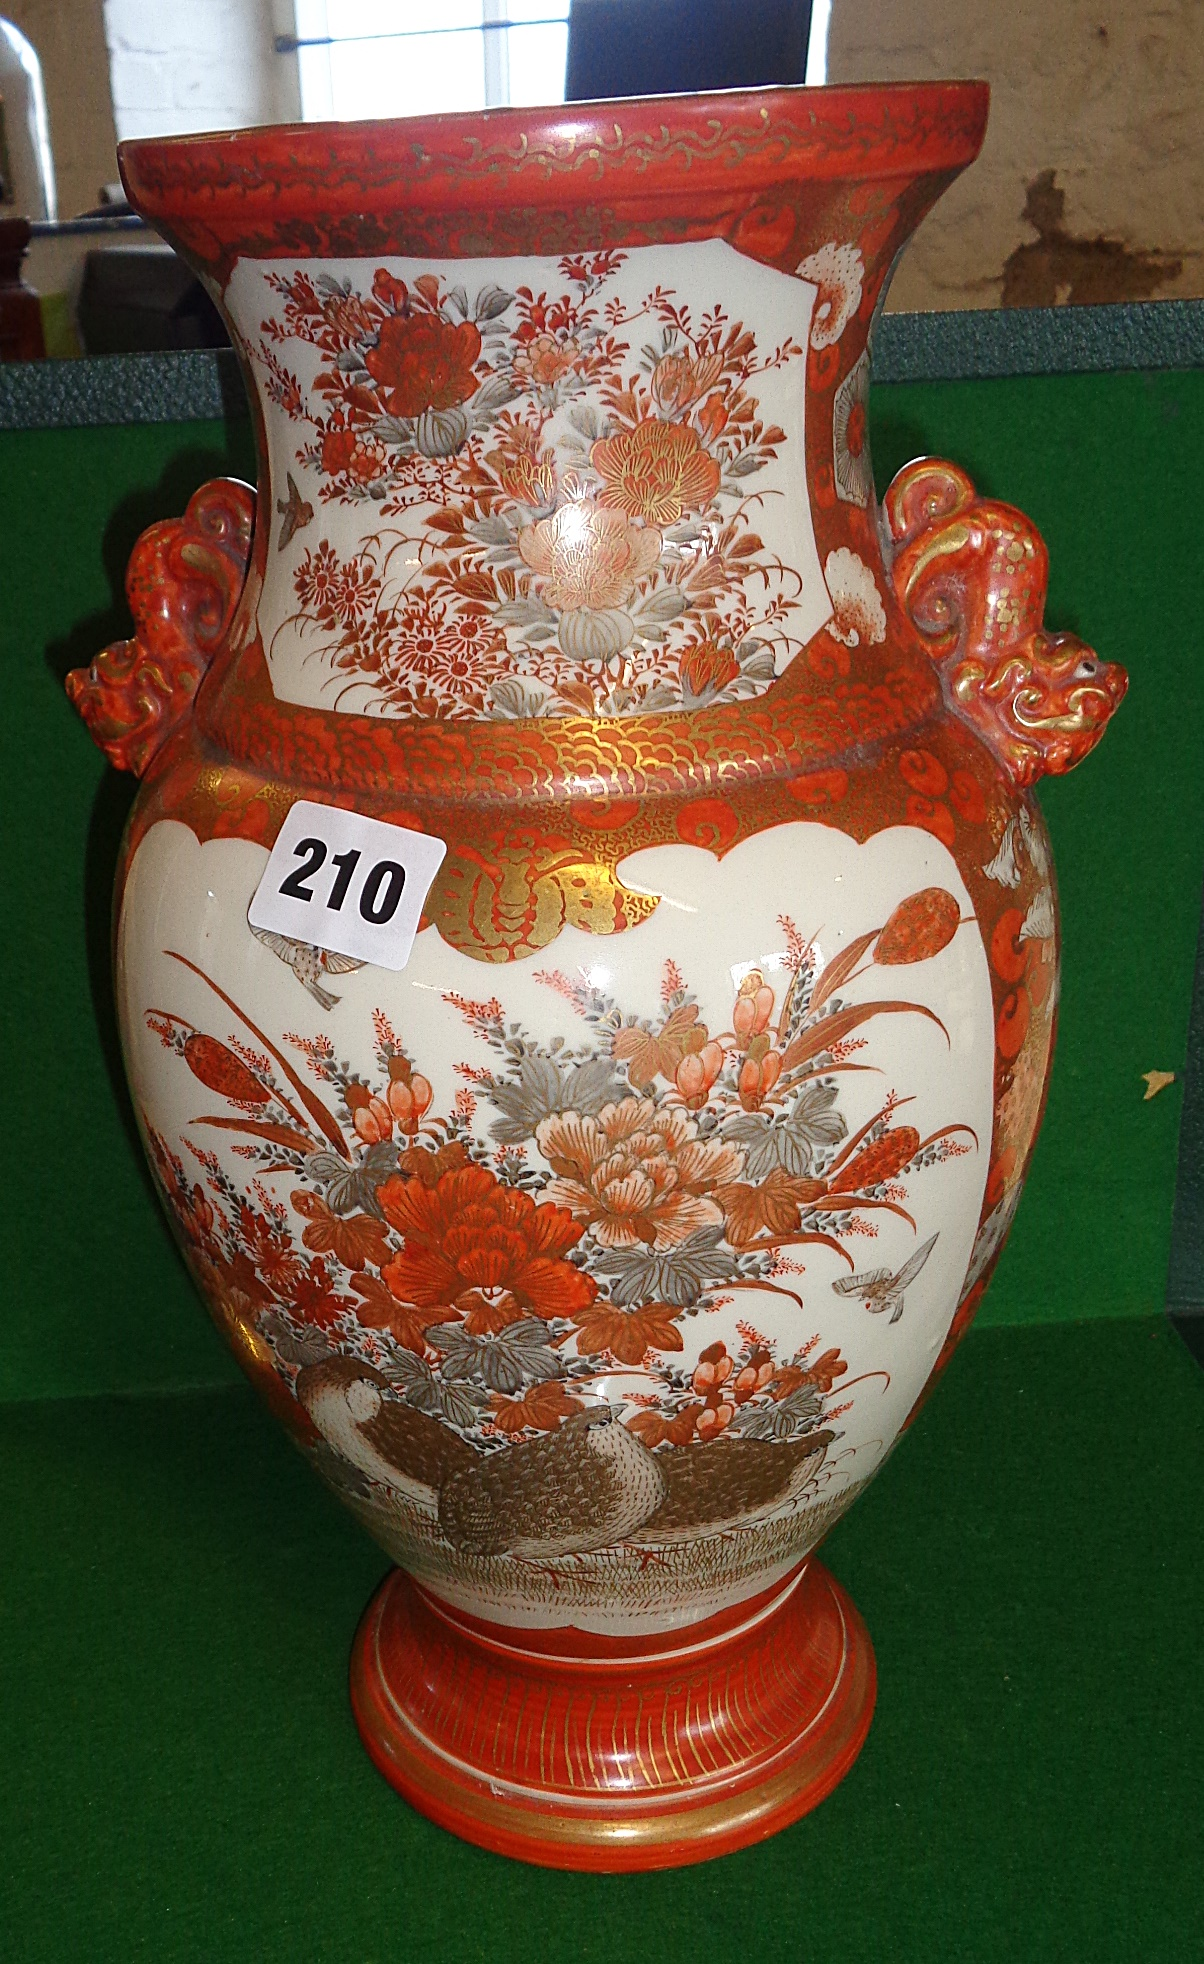 Lot 210 - Satsuma vase with dragon handles, 34cm high, signed on the base (hairline crack)